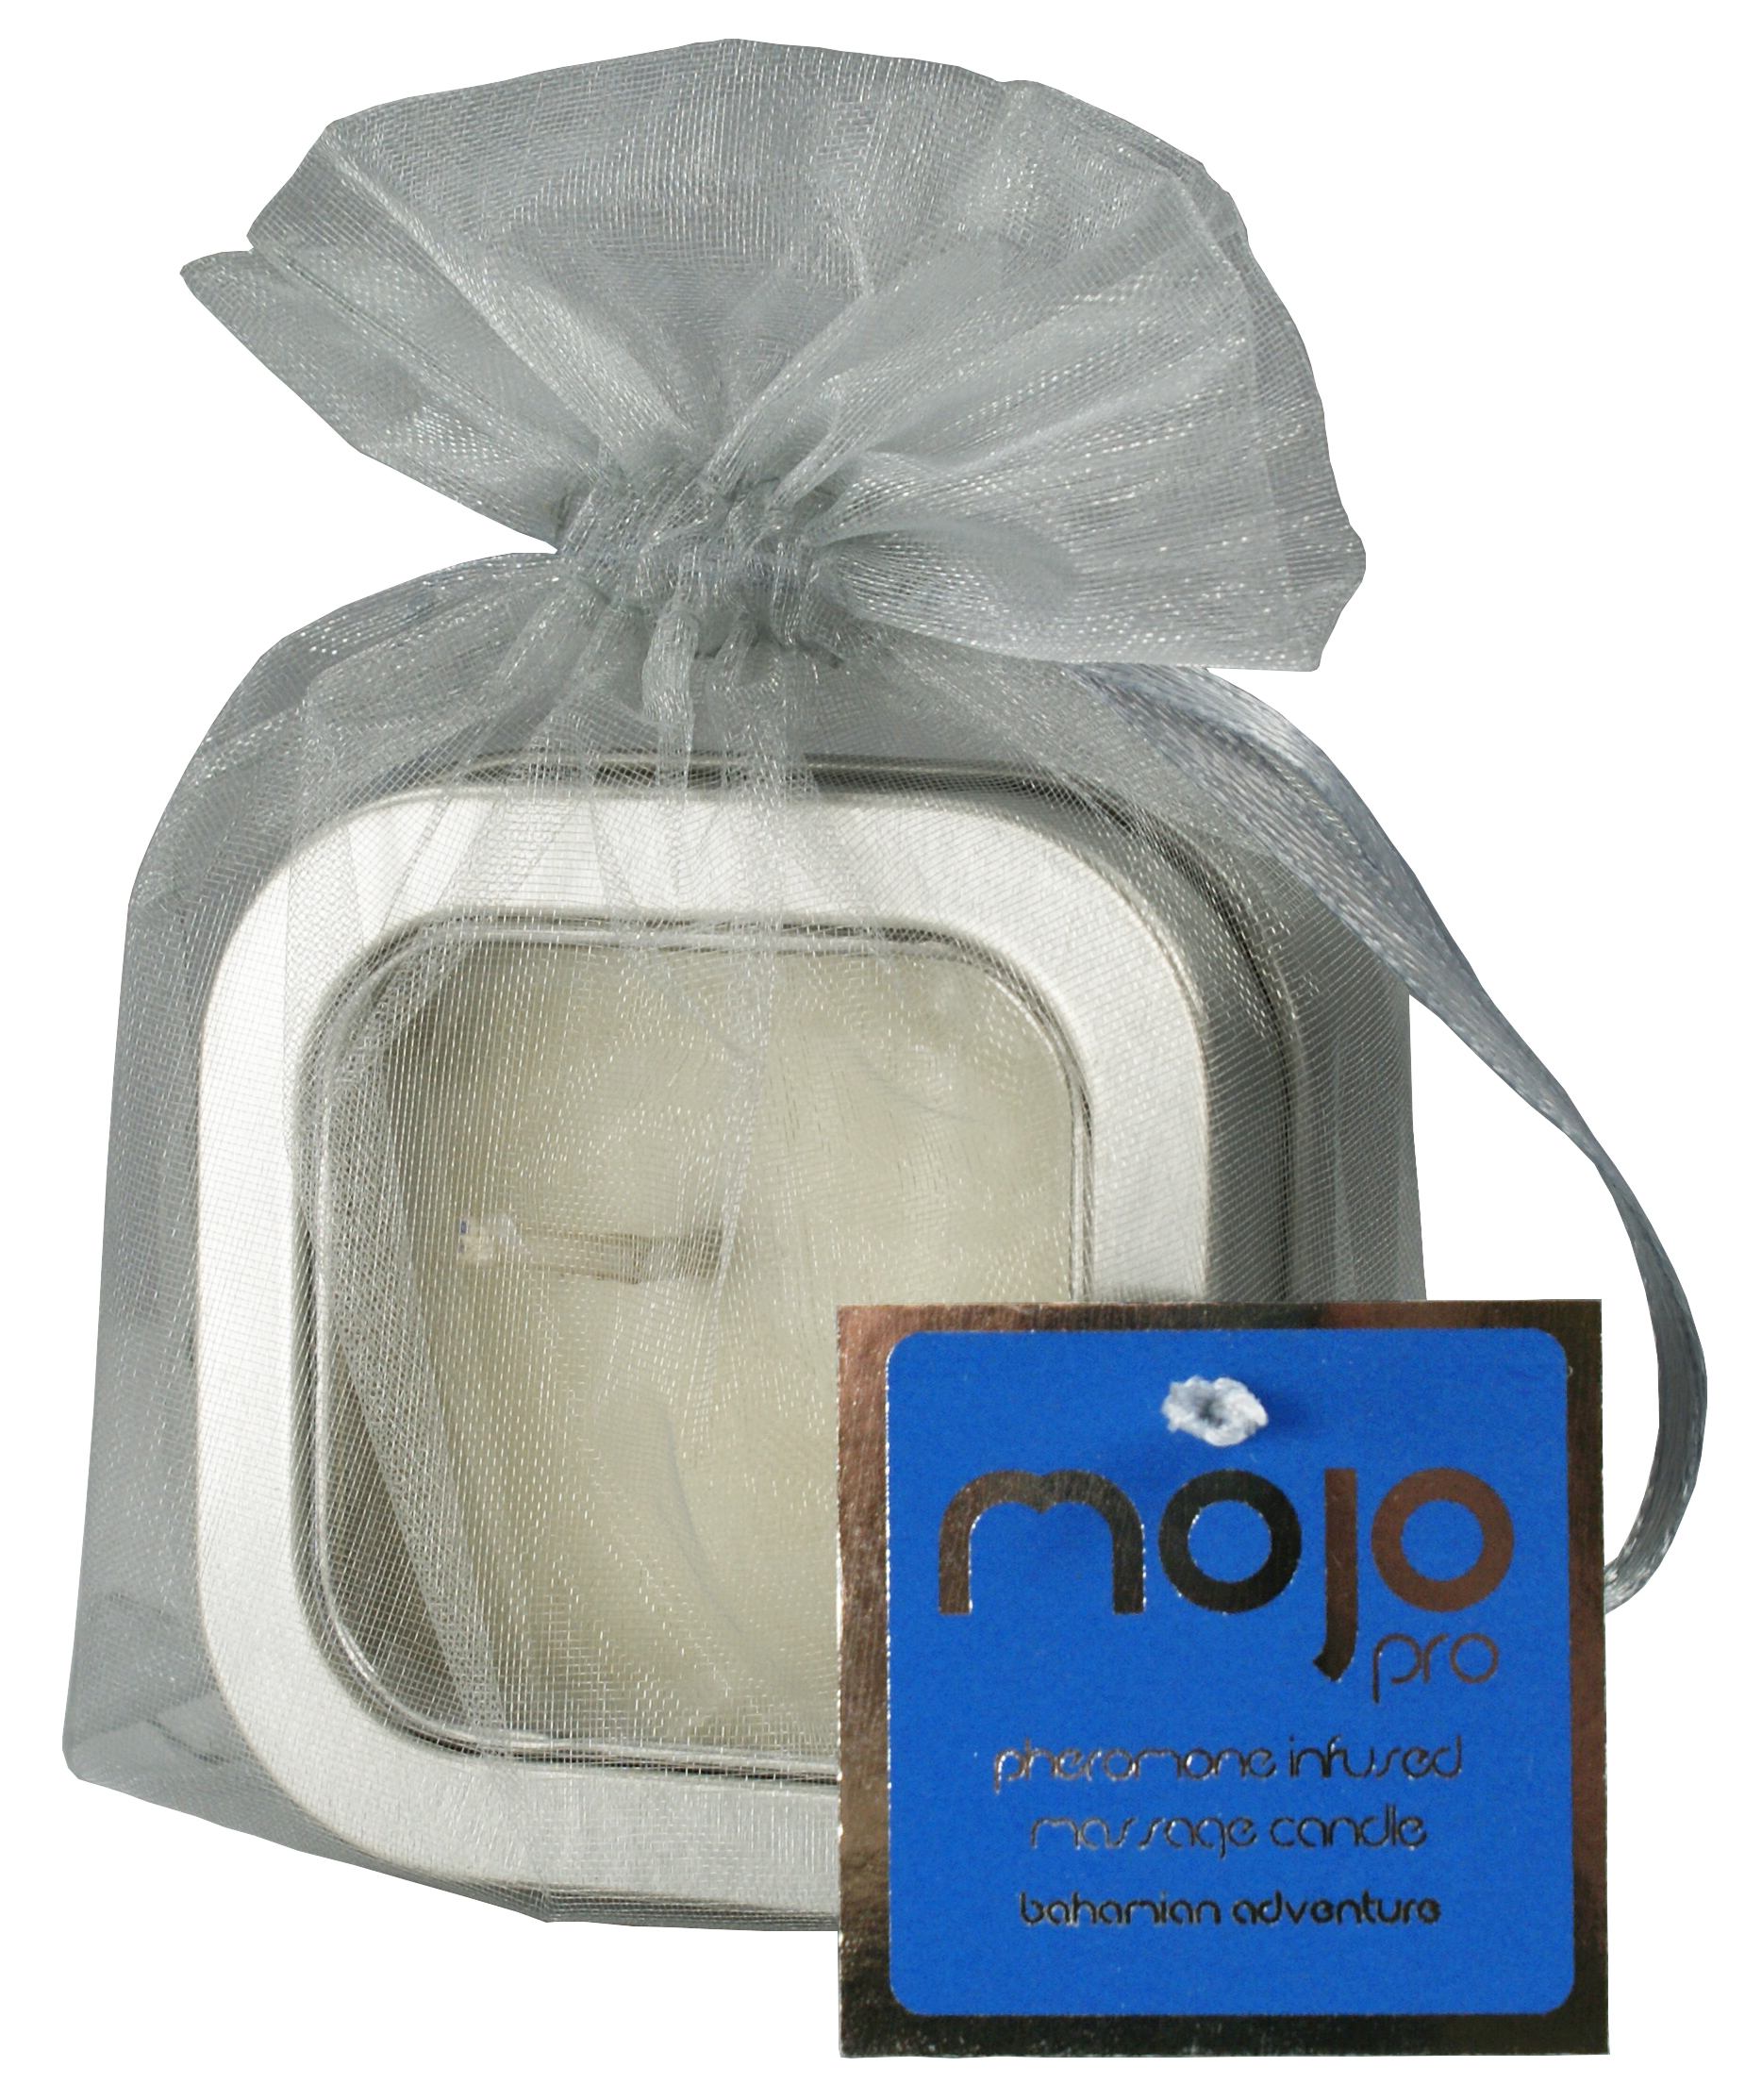 Love Scent coupon: Mojo Pro Pheromone Infused Massage Candle - Bahamian Adventure